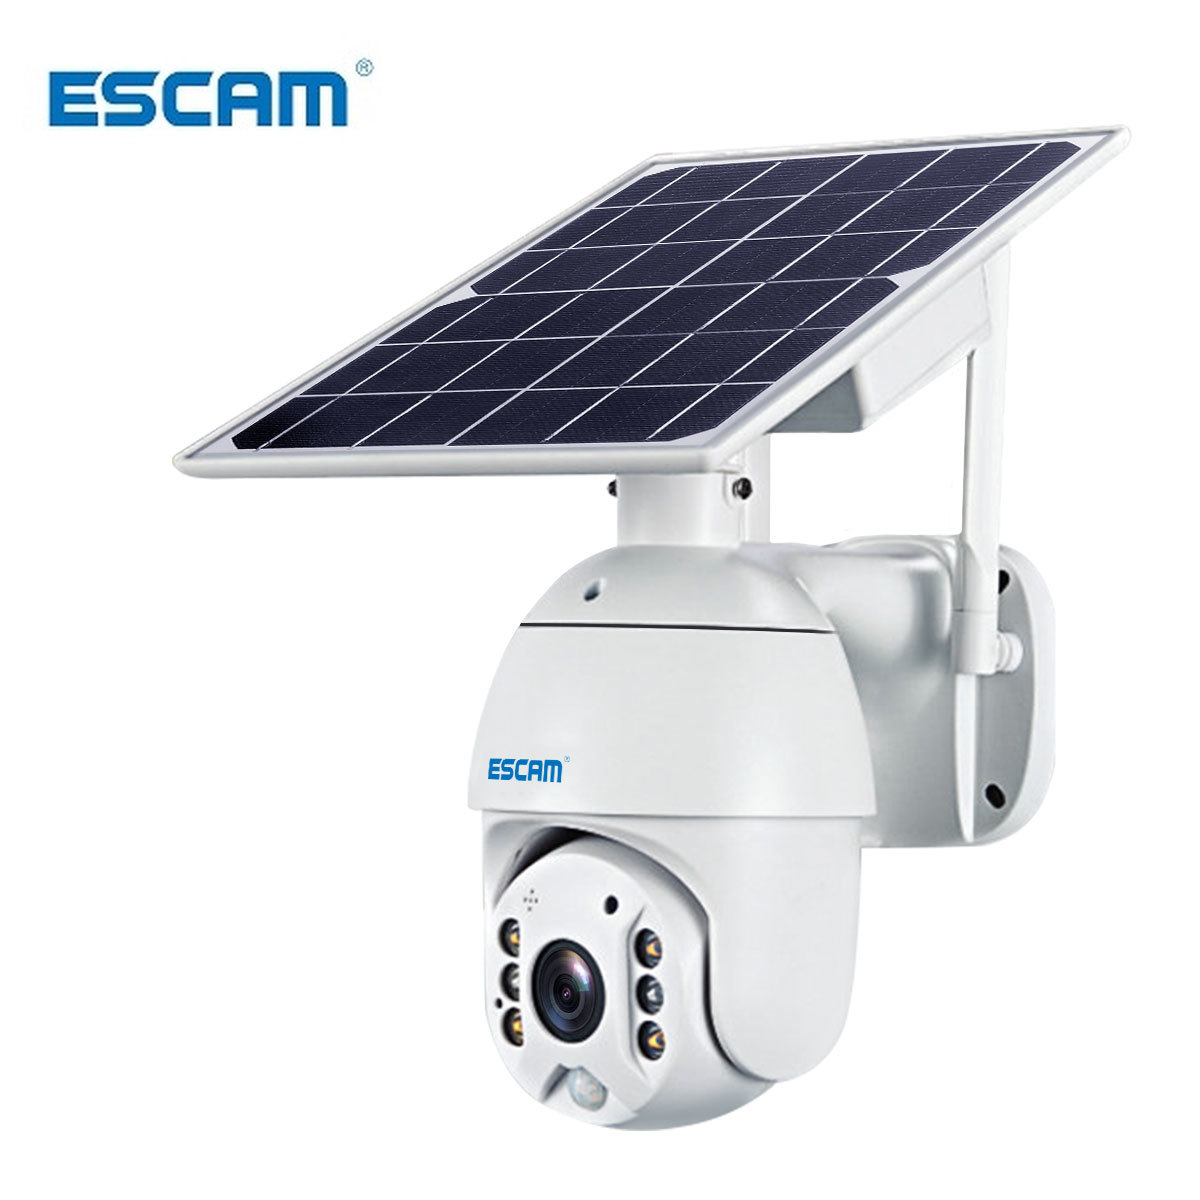 ESCAM QF280 1080p Wifi Version Shell Solar Security Camera Outdoor Surveillance Waterproof CCTV Camera Smart Home Two-way Voice